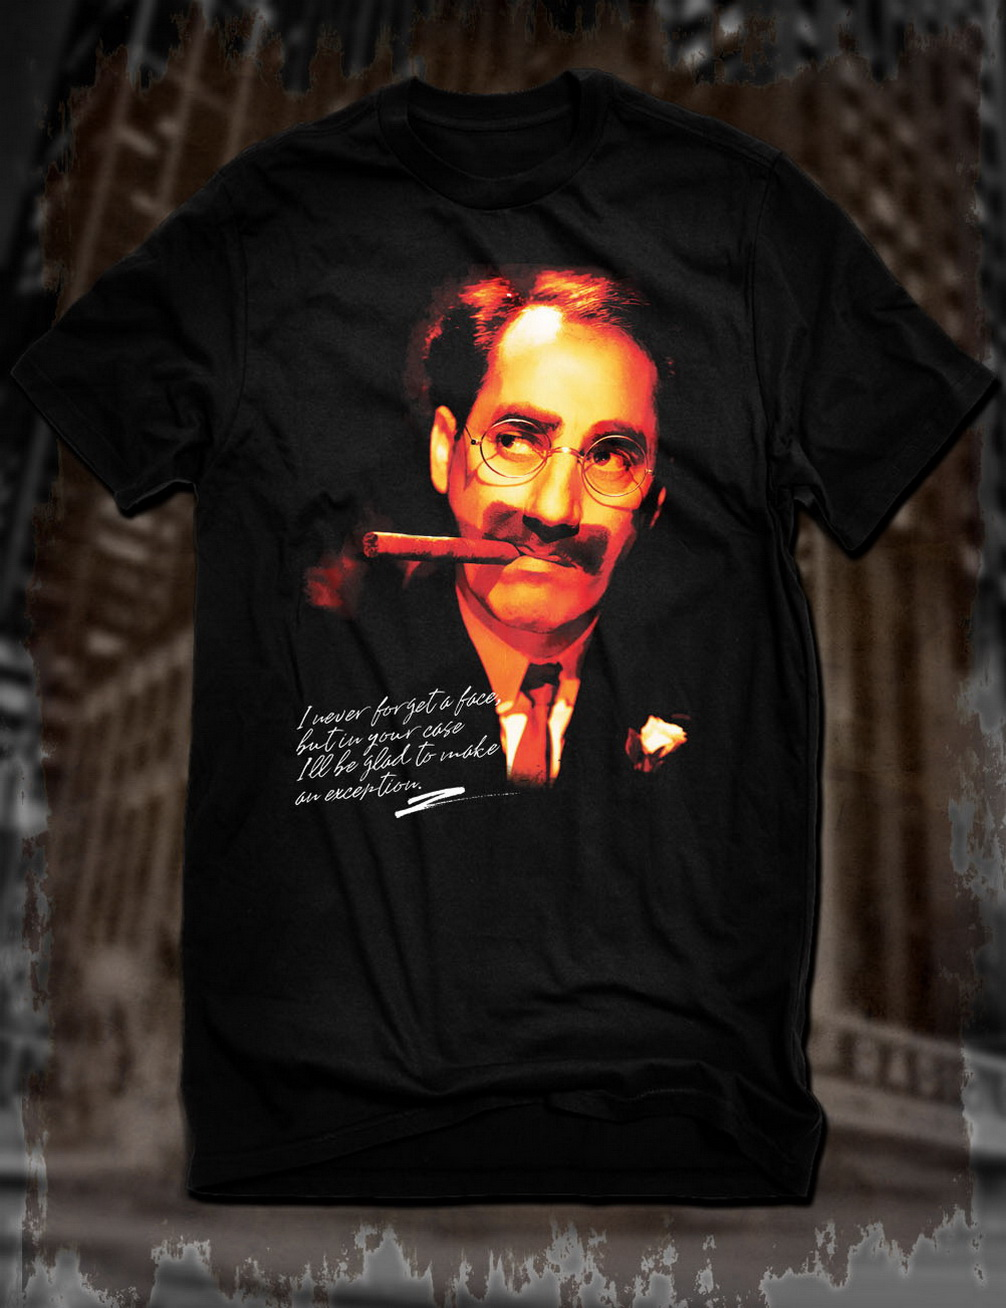 New Black Groucho Marx Funny Quote Tops Tee T Shirt Harpo Comedy Film Marx Brothers T-Shirt Breathable Tops image